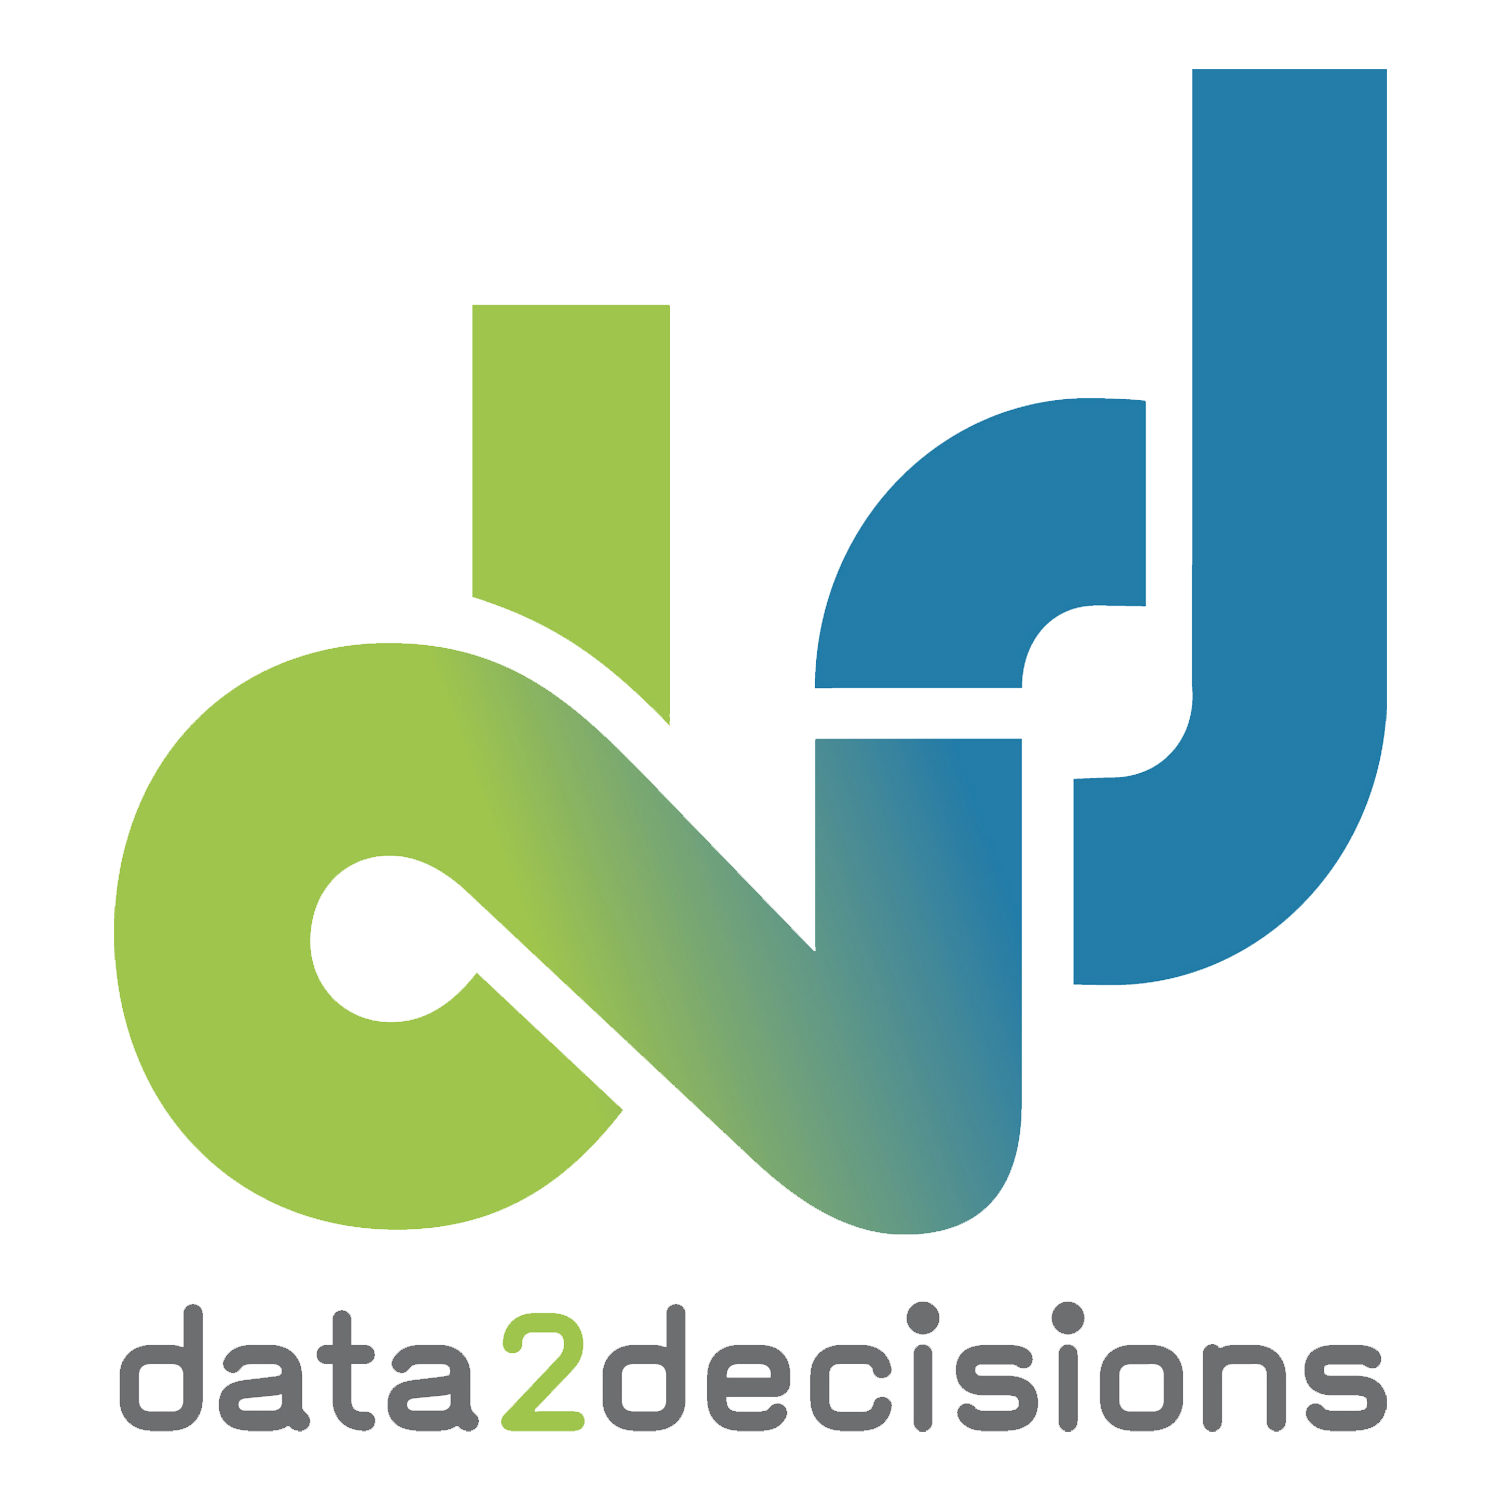 Data2Decisions logo